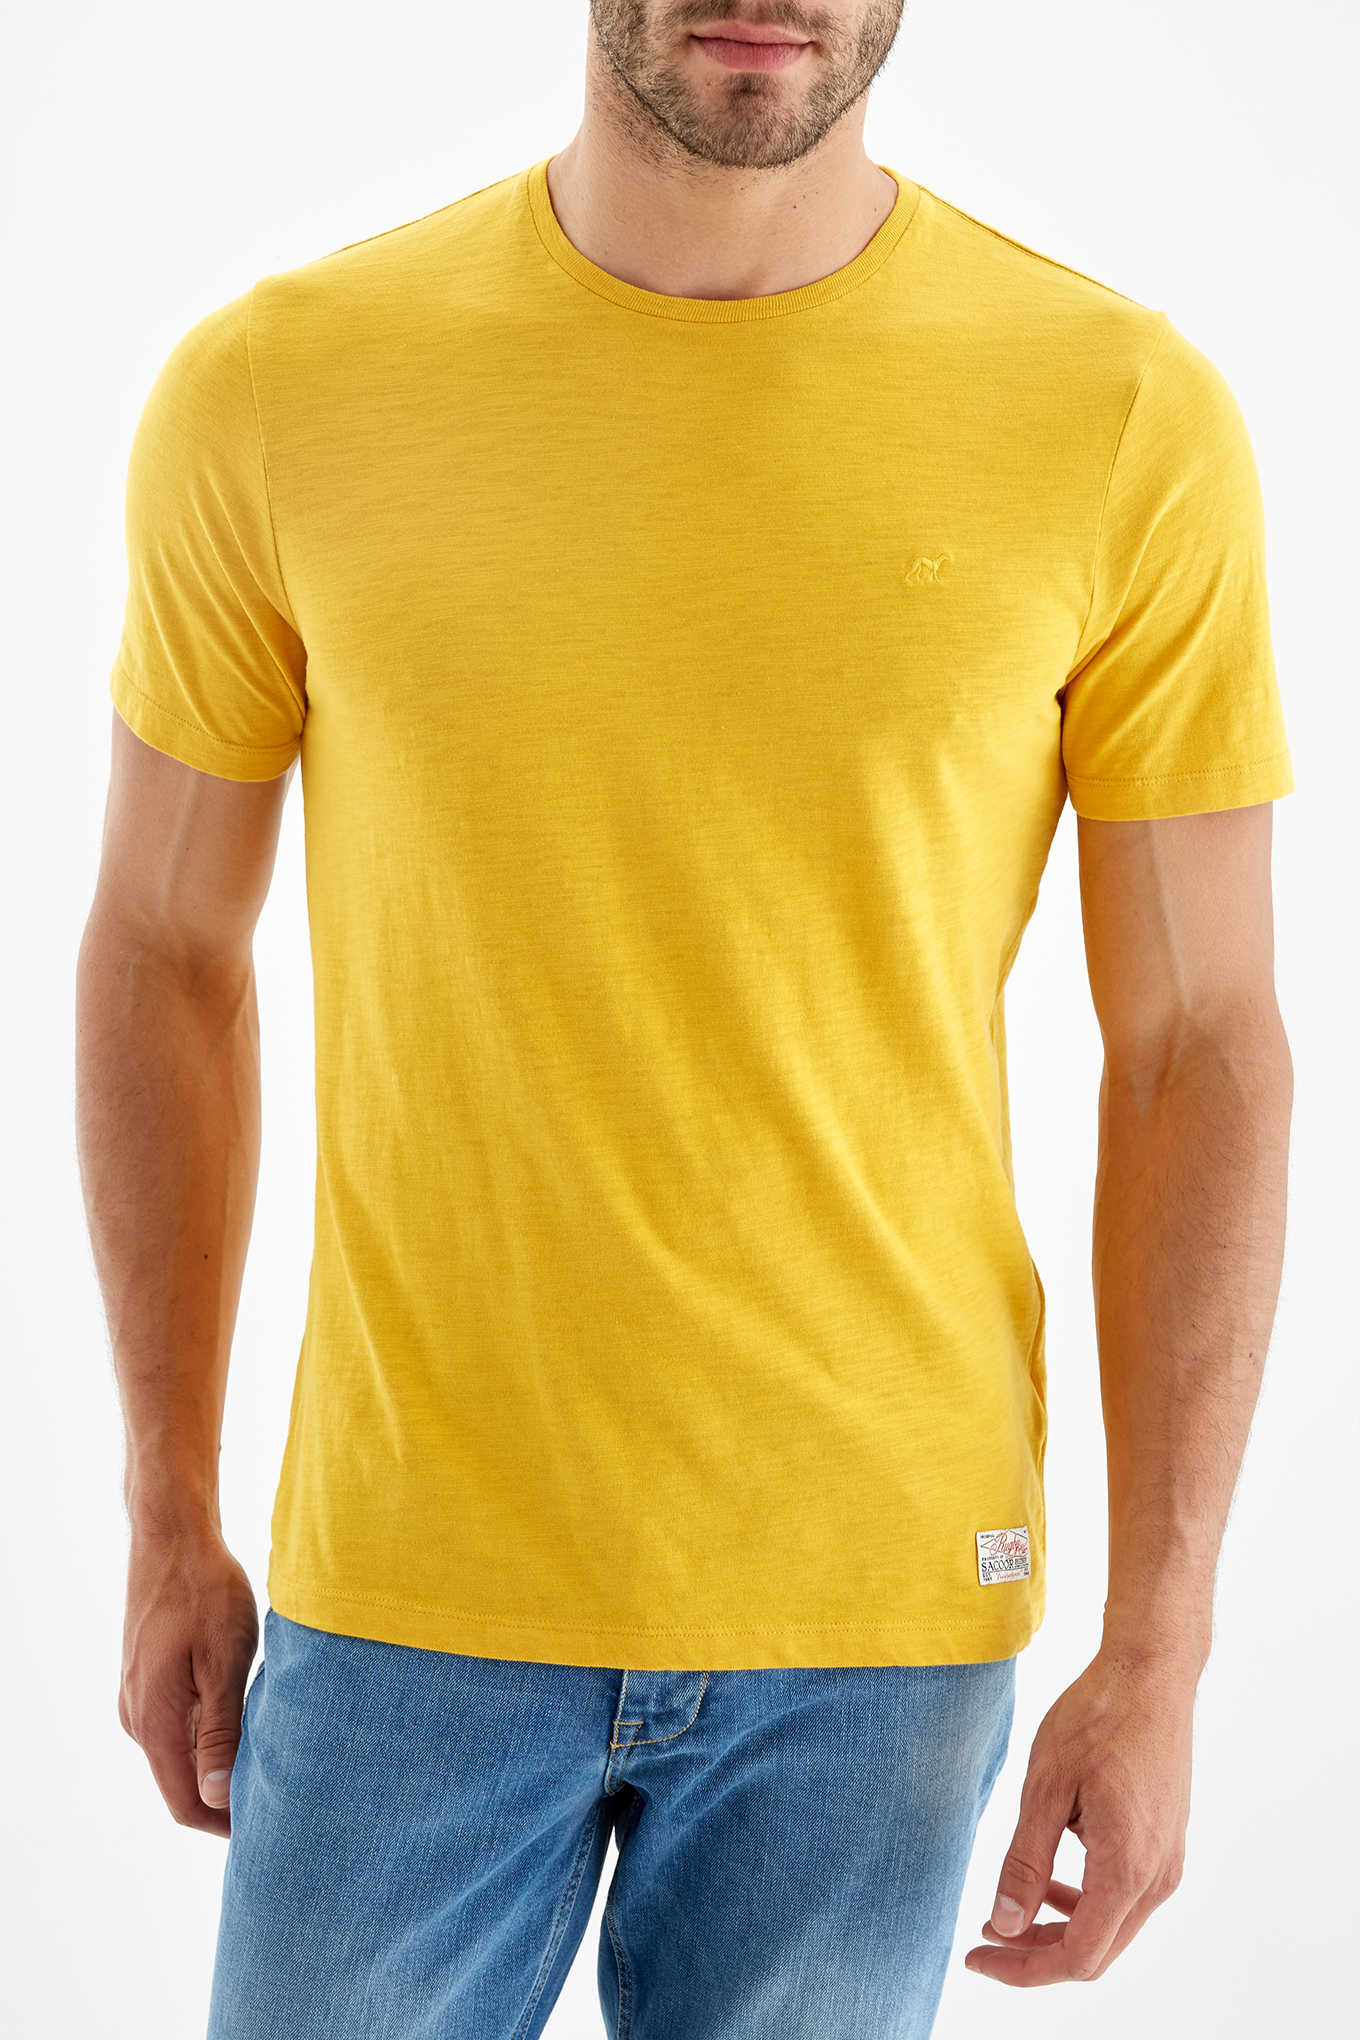 T-Shirt Yellow Sport Man